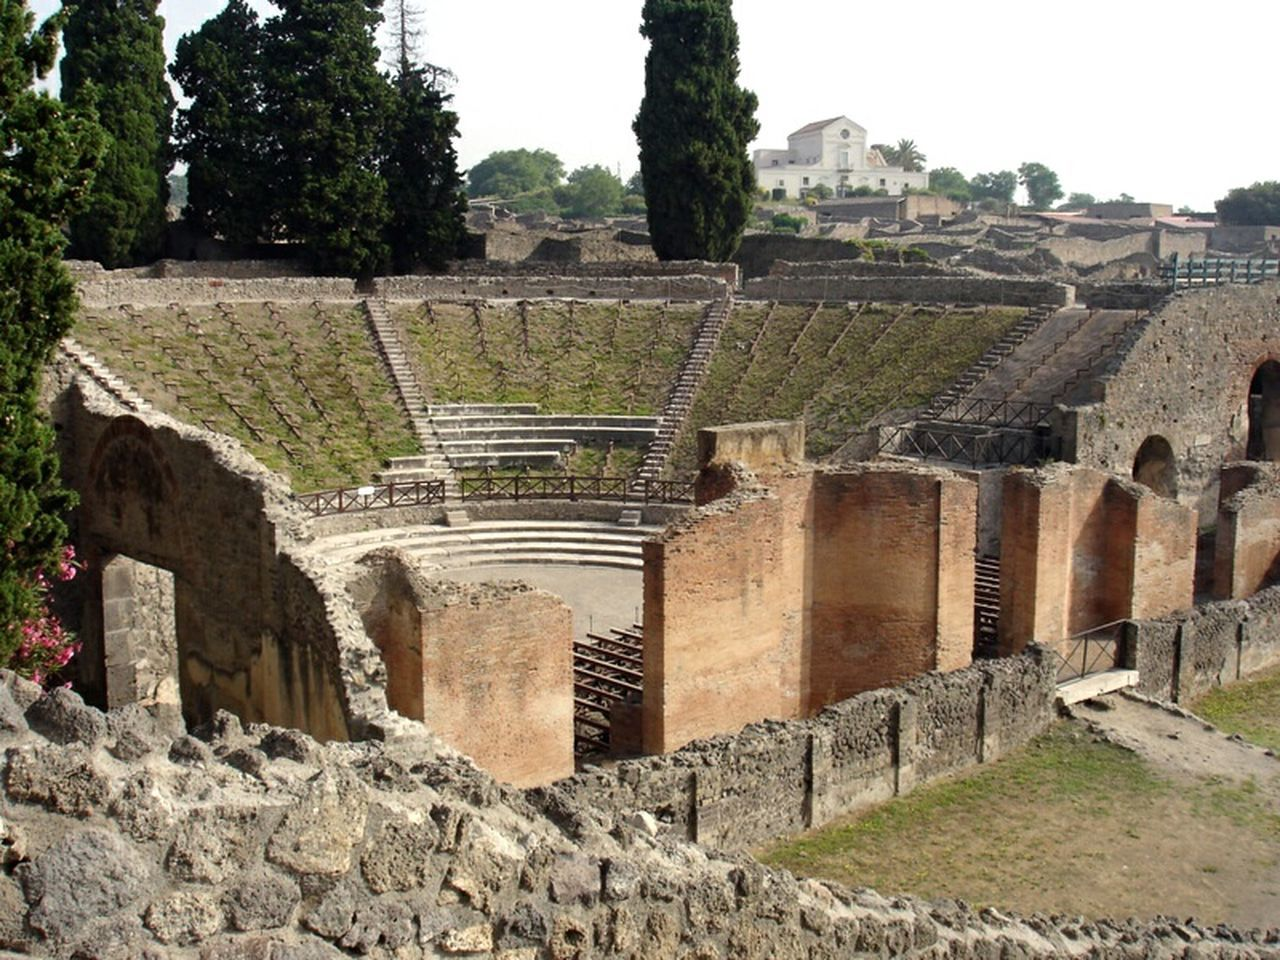 Ancient + Modern Live Side By Side | Amphitheater | Pompeii  | Italy | Vesuvius | Travel | This Week On Eyeem